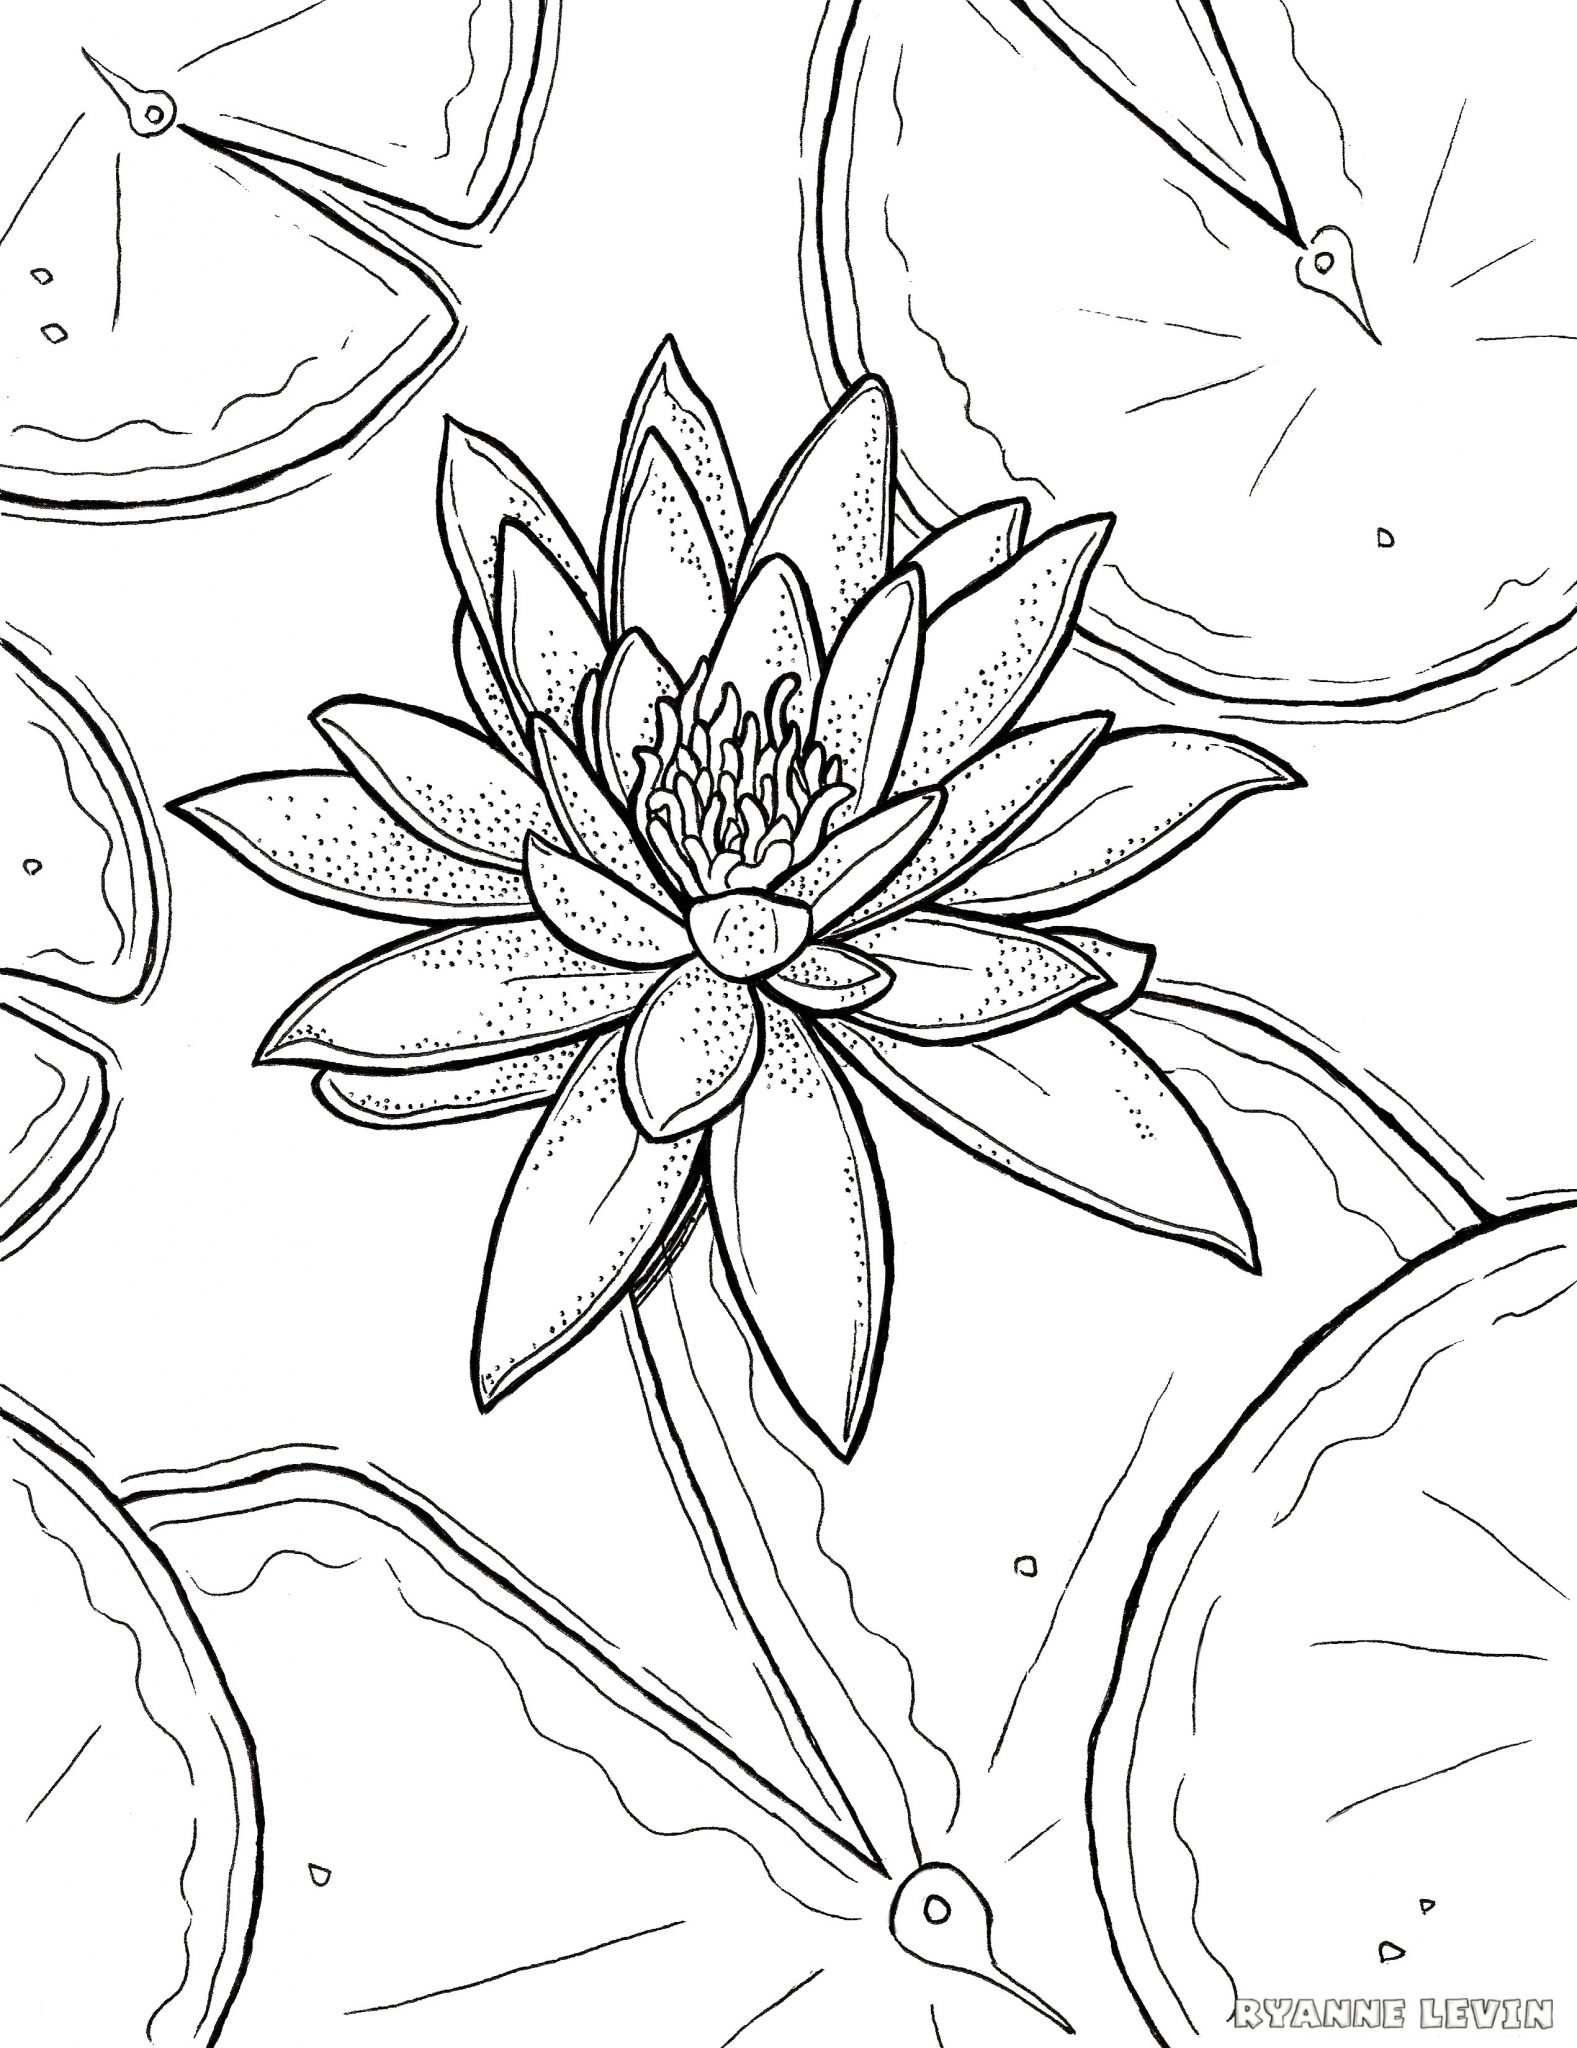 FREE Printable Water Lily Coloring Page Download